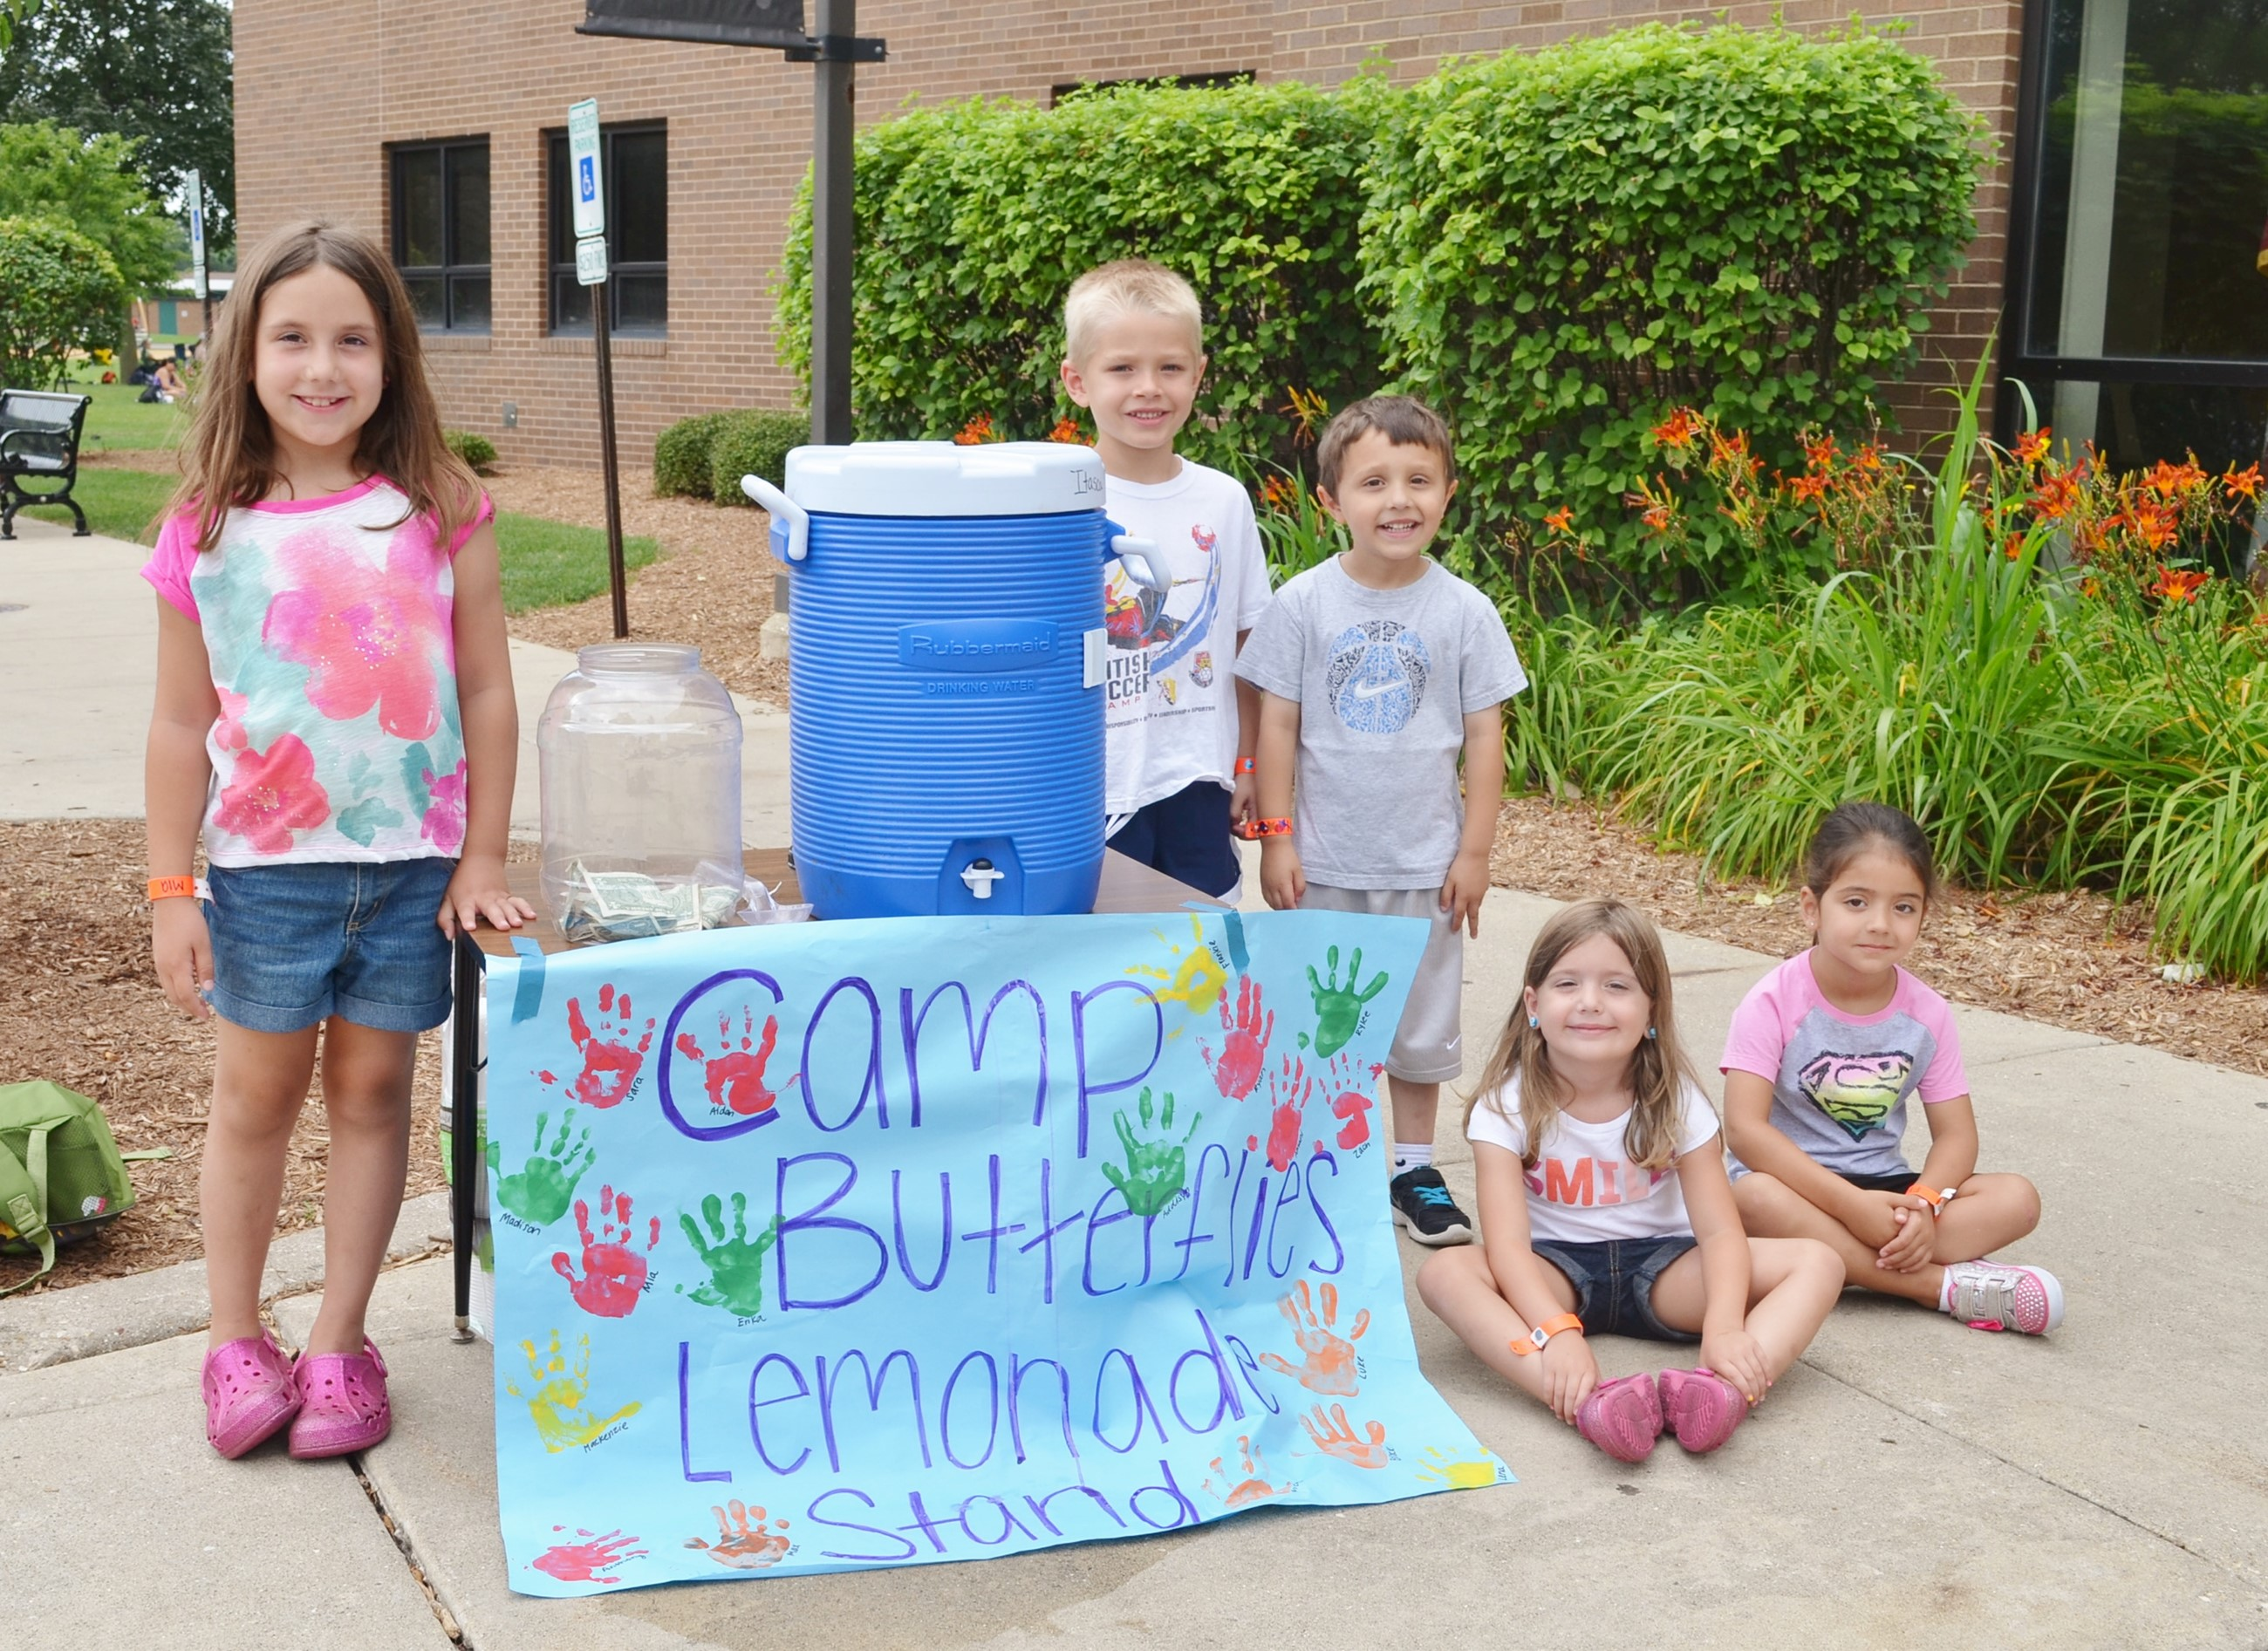 Camp Butterflies Lemonade Stand.JPG